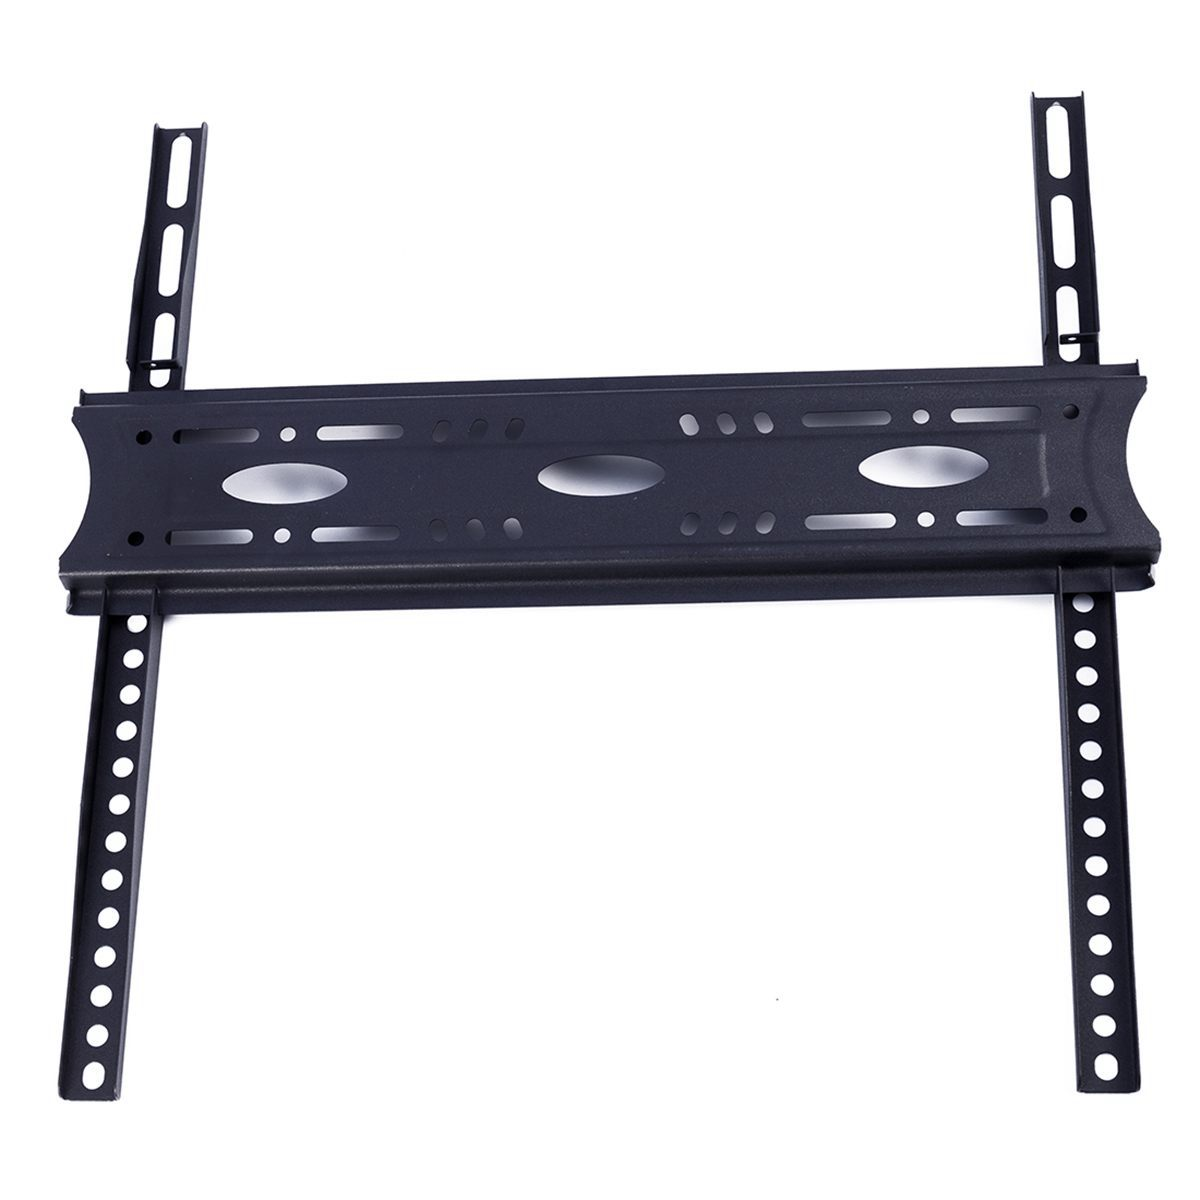 Home Improvement Bathroom Fixtures Cnim Hot Flat Slim Tv Wall Mount Bracket 23 28 30 32 40 42 48 50 55 Inch Led Lcd Plasma